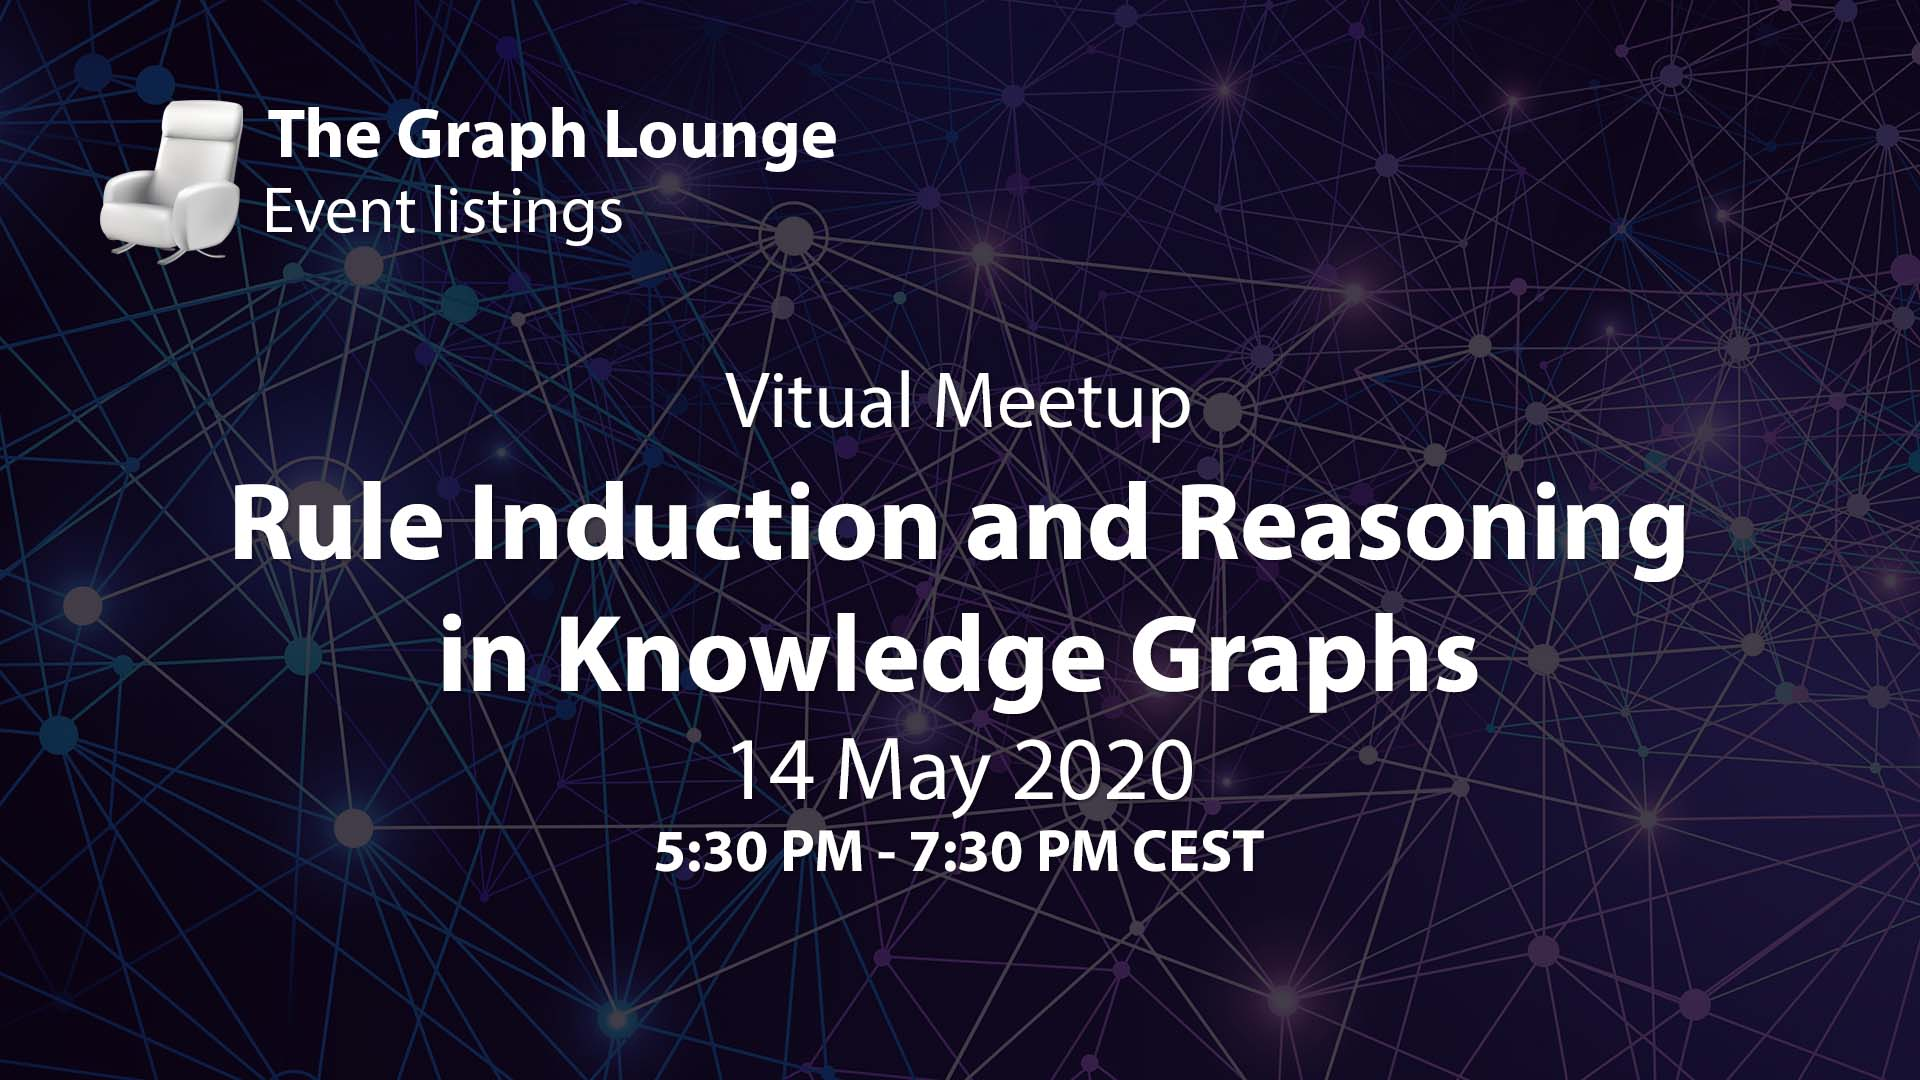 Rule Induction and Reasoning in Knowledge Graphs